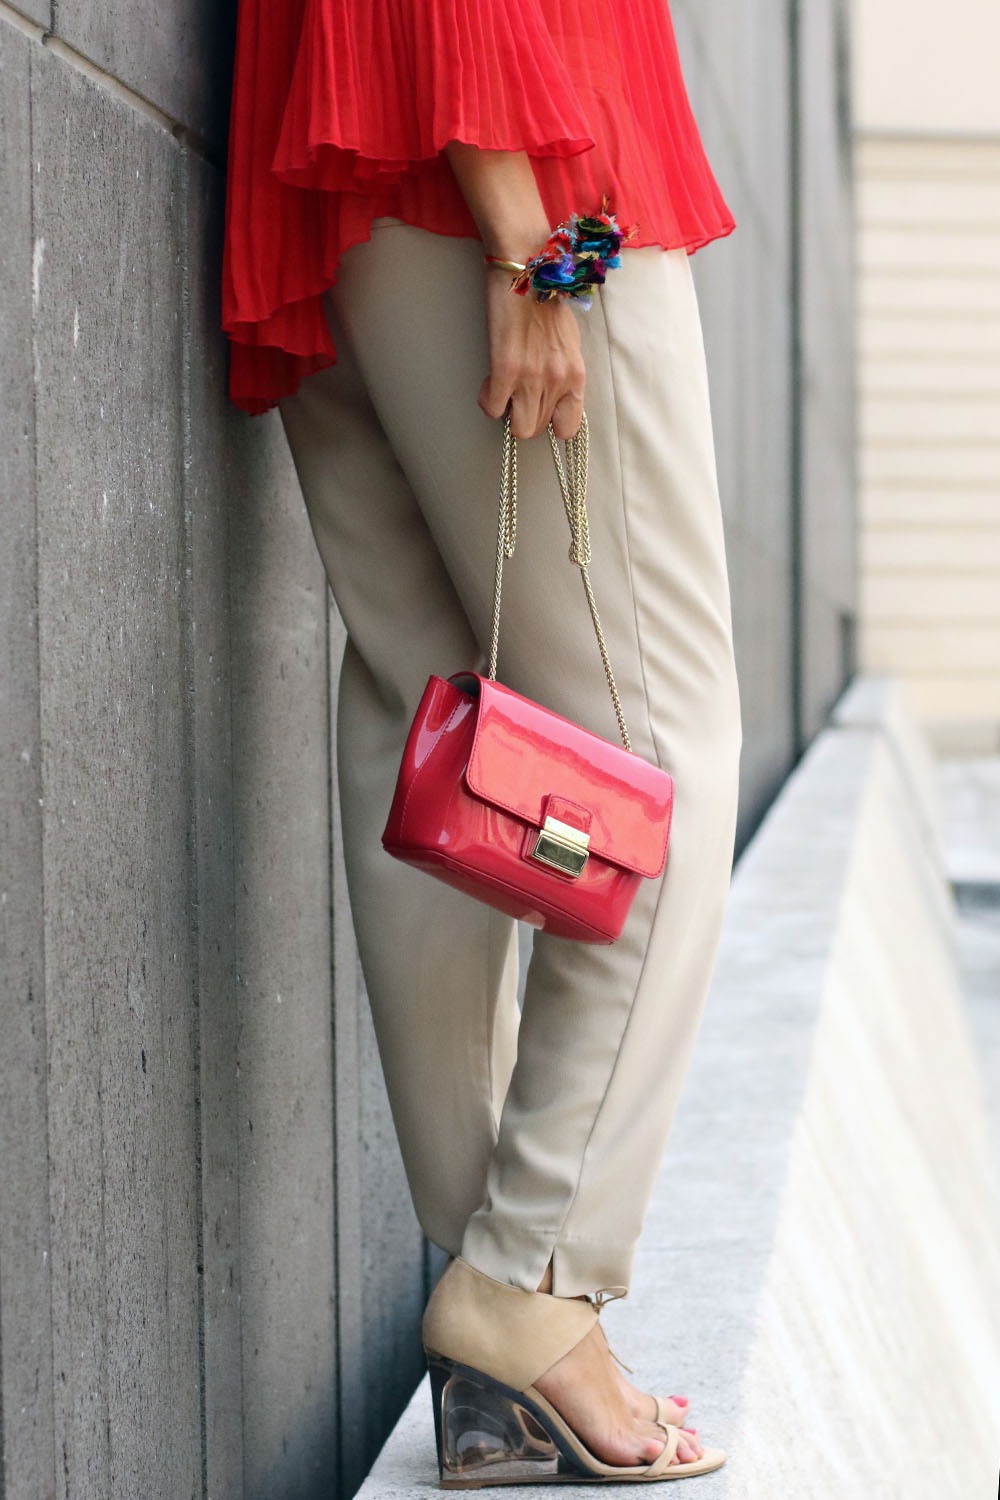 colourclub-modeblog-outfit-off-the-shoulder-top-burberry-shoes-furla-bag-thai-silk-juwelery-ornaments-lor5